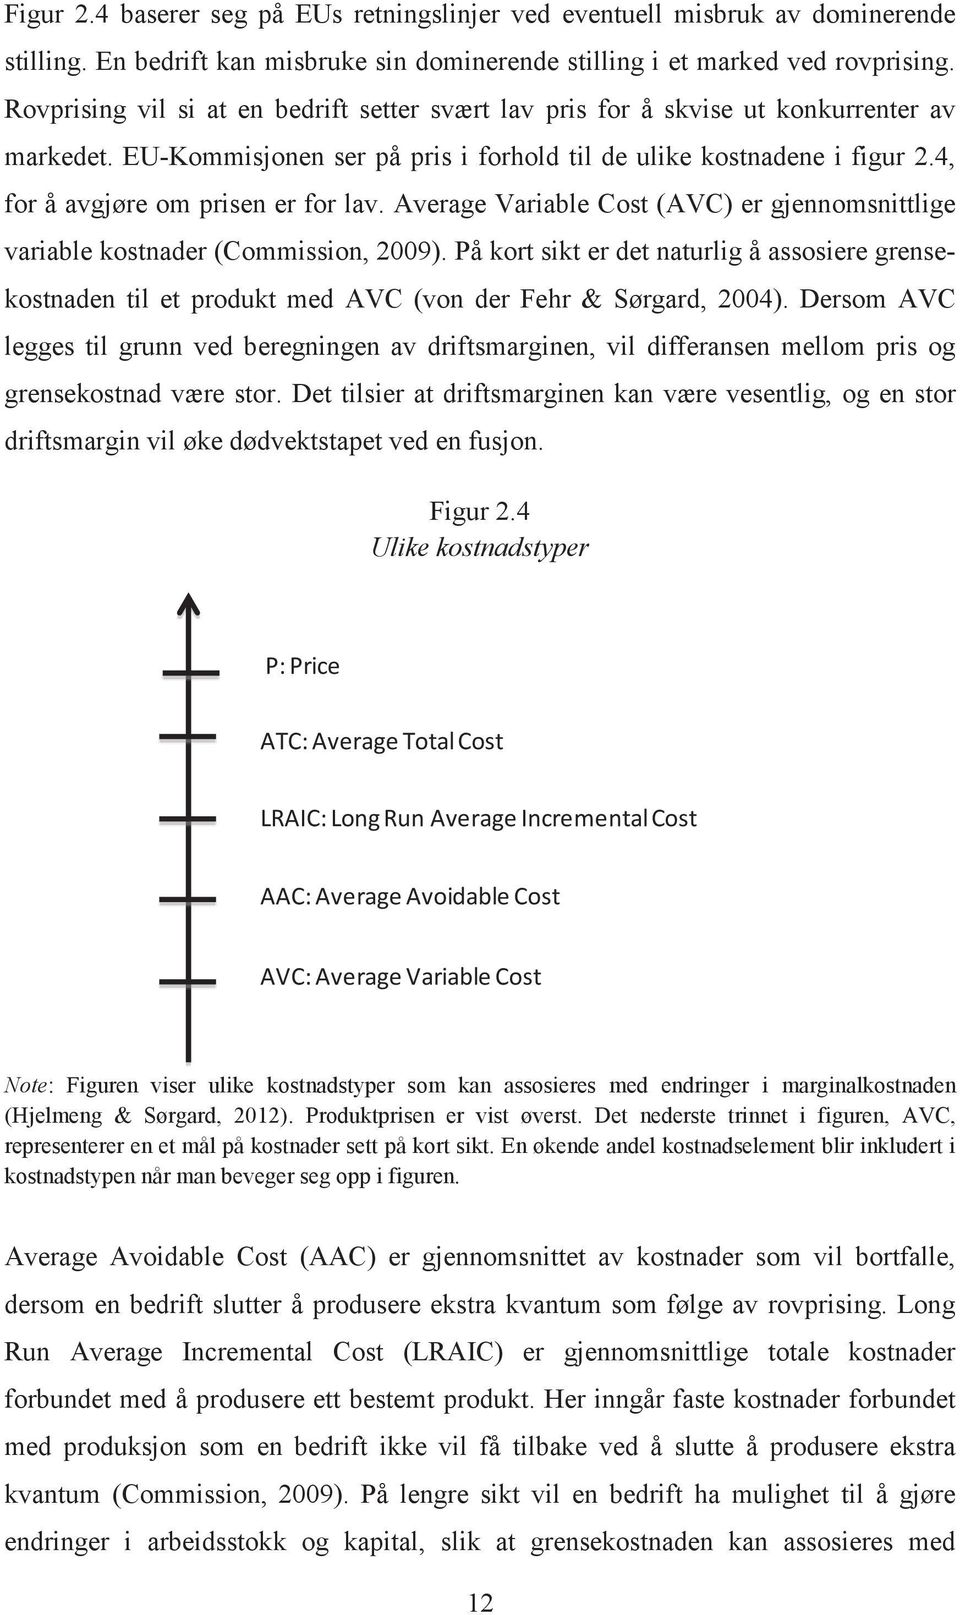 4, for å avgjøre om prisen er for lav. Average Variable Cost (AVC) er gjennomsnittlige variable kostnader (Commission, 2009).